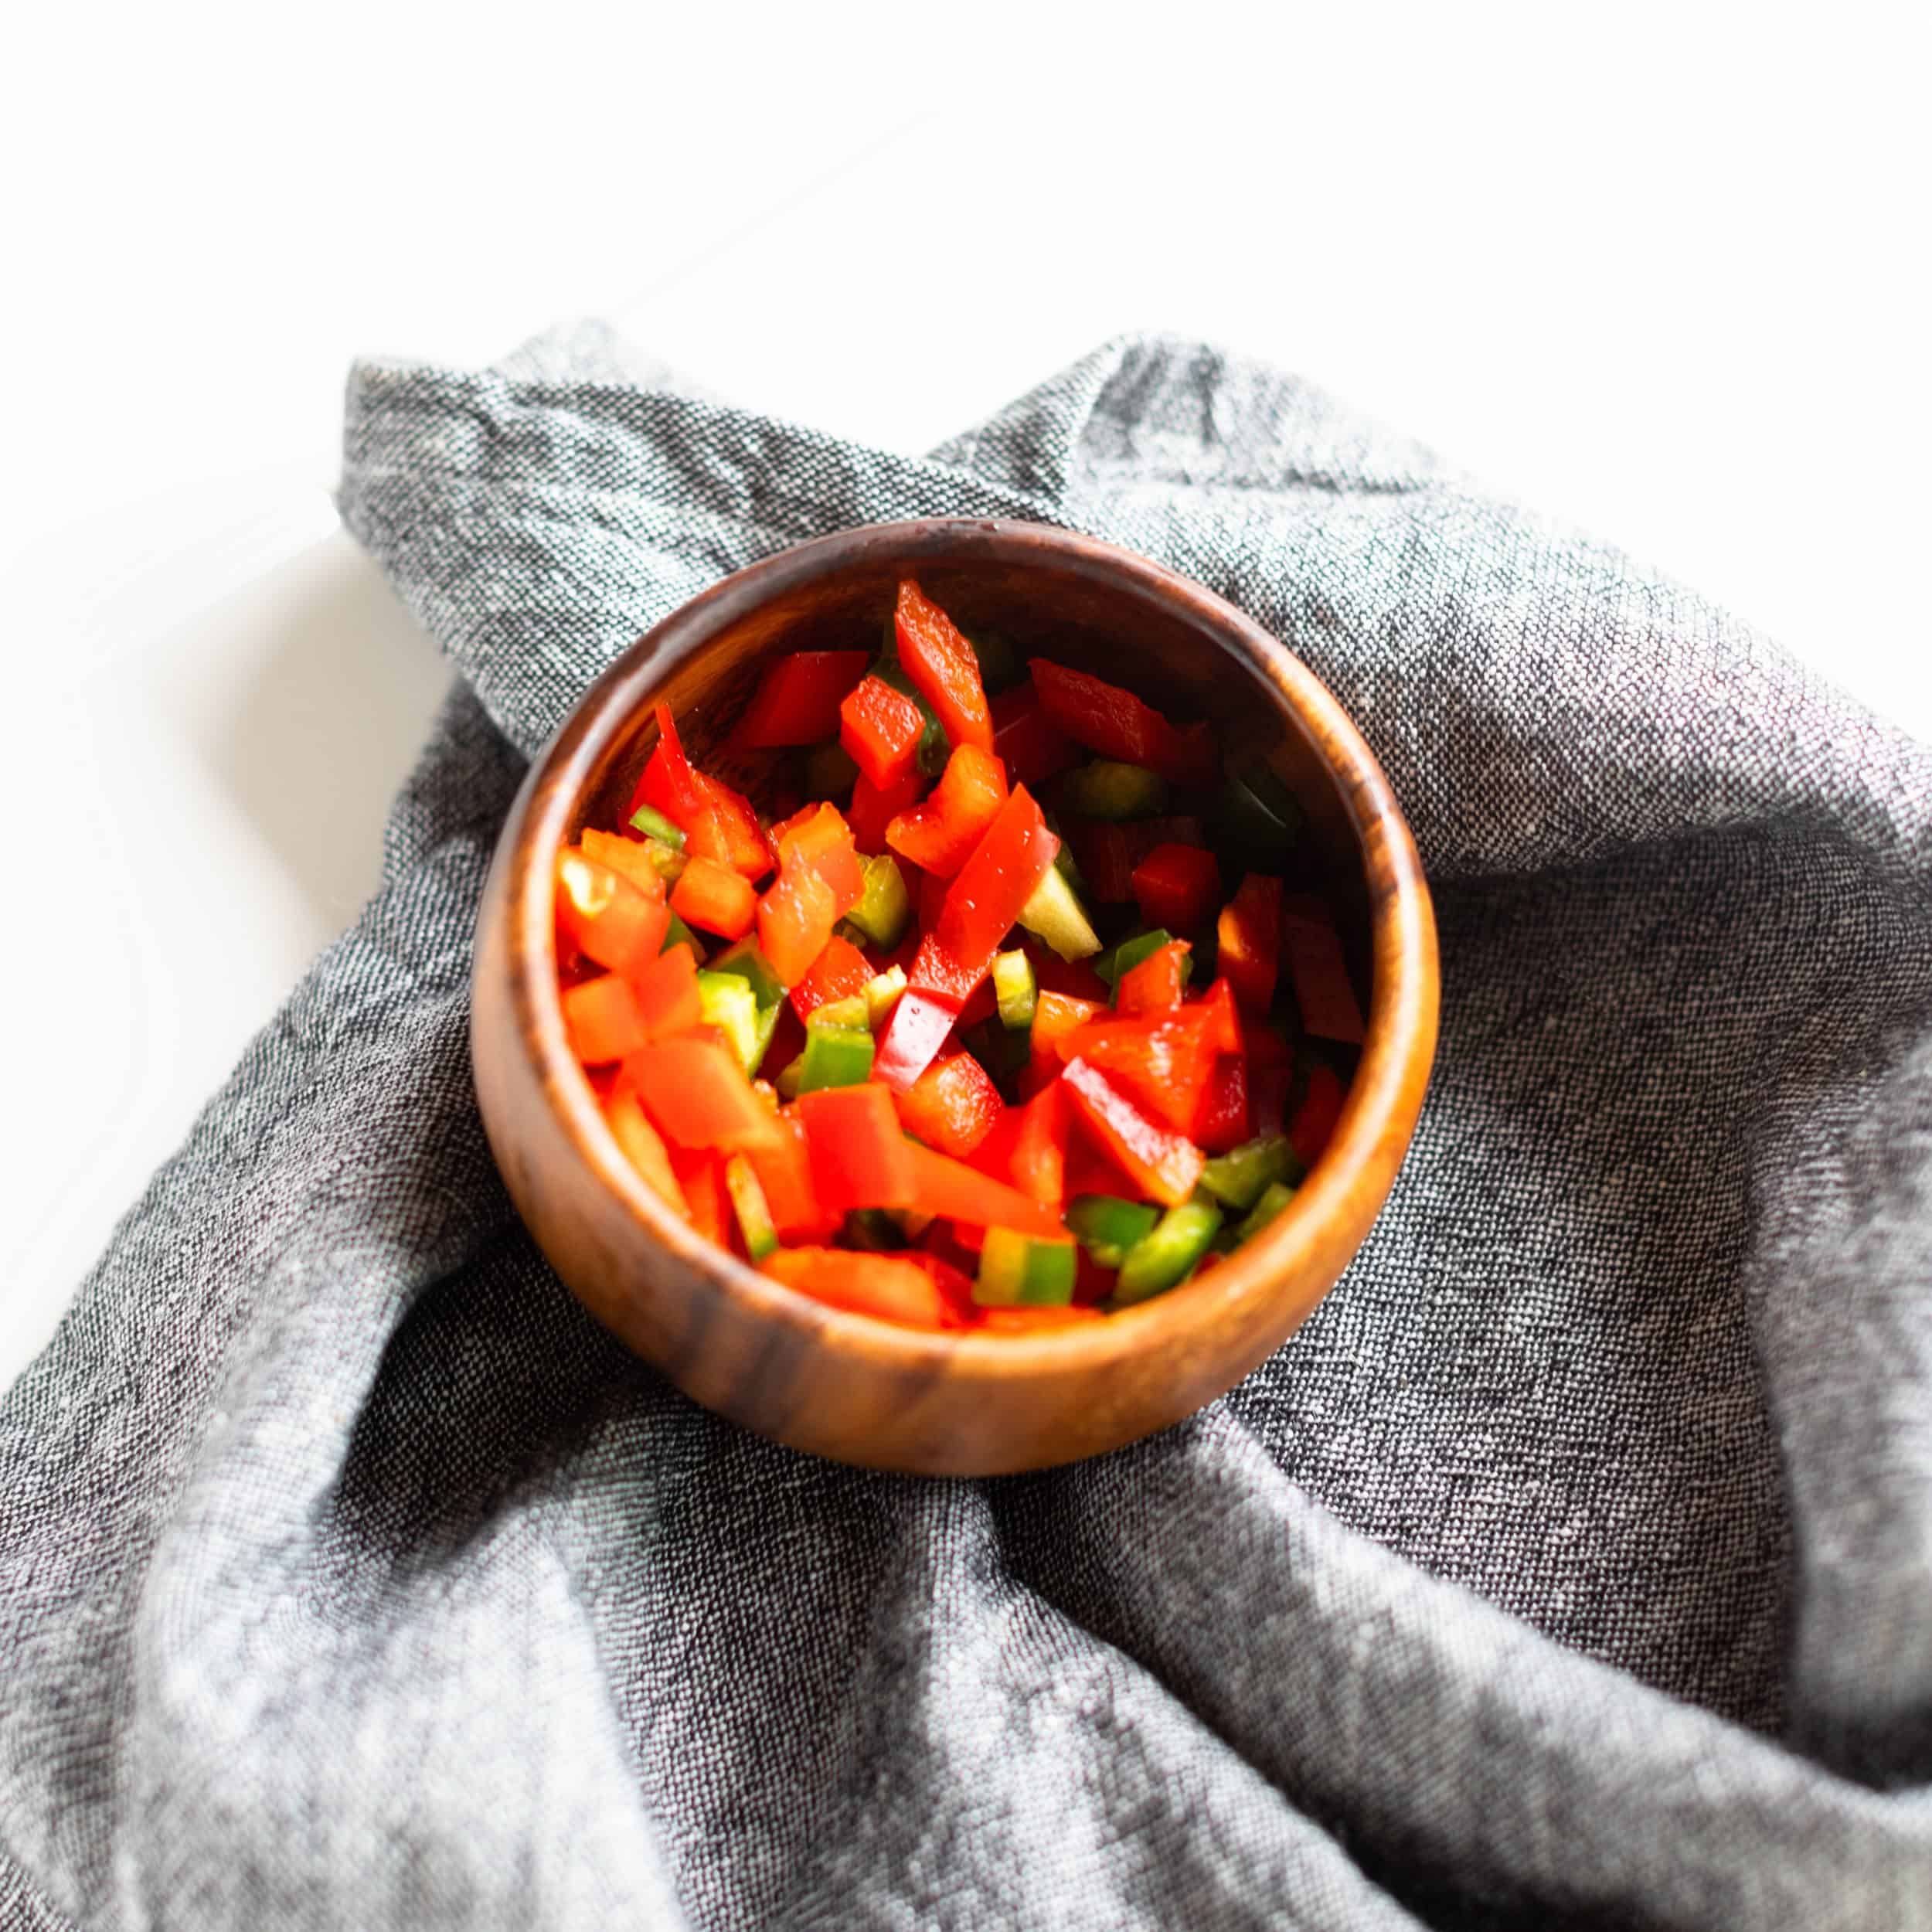 wood bowl on denim napkin holding additional vegetable ingredients for fried rice: red pepper and jalapeño